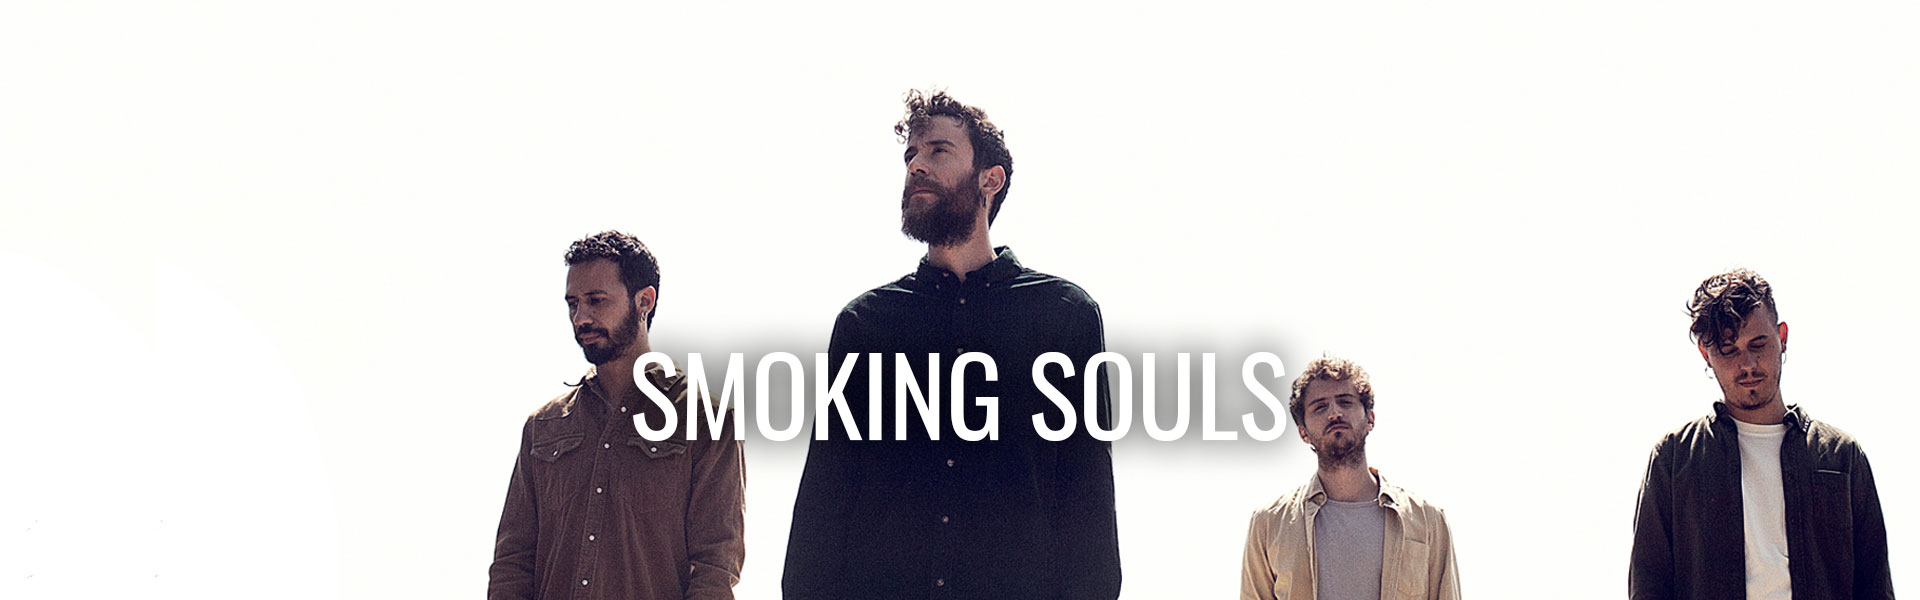 06-SMOKING-SOULS-2018